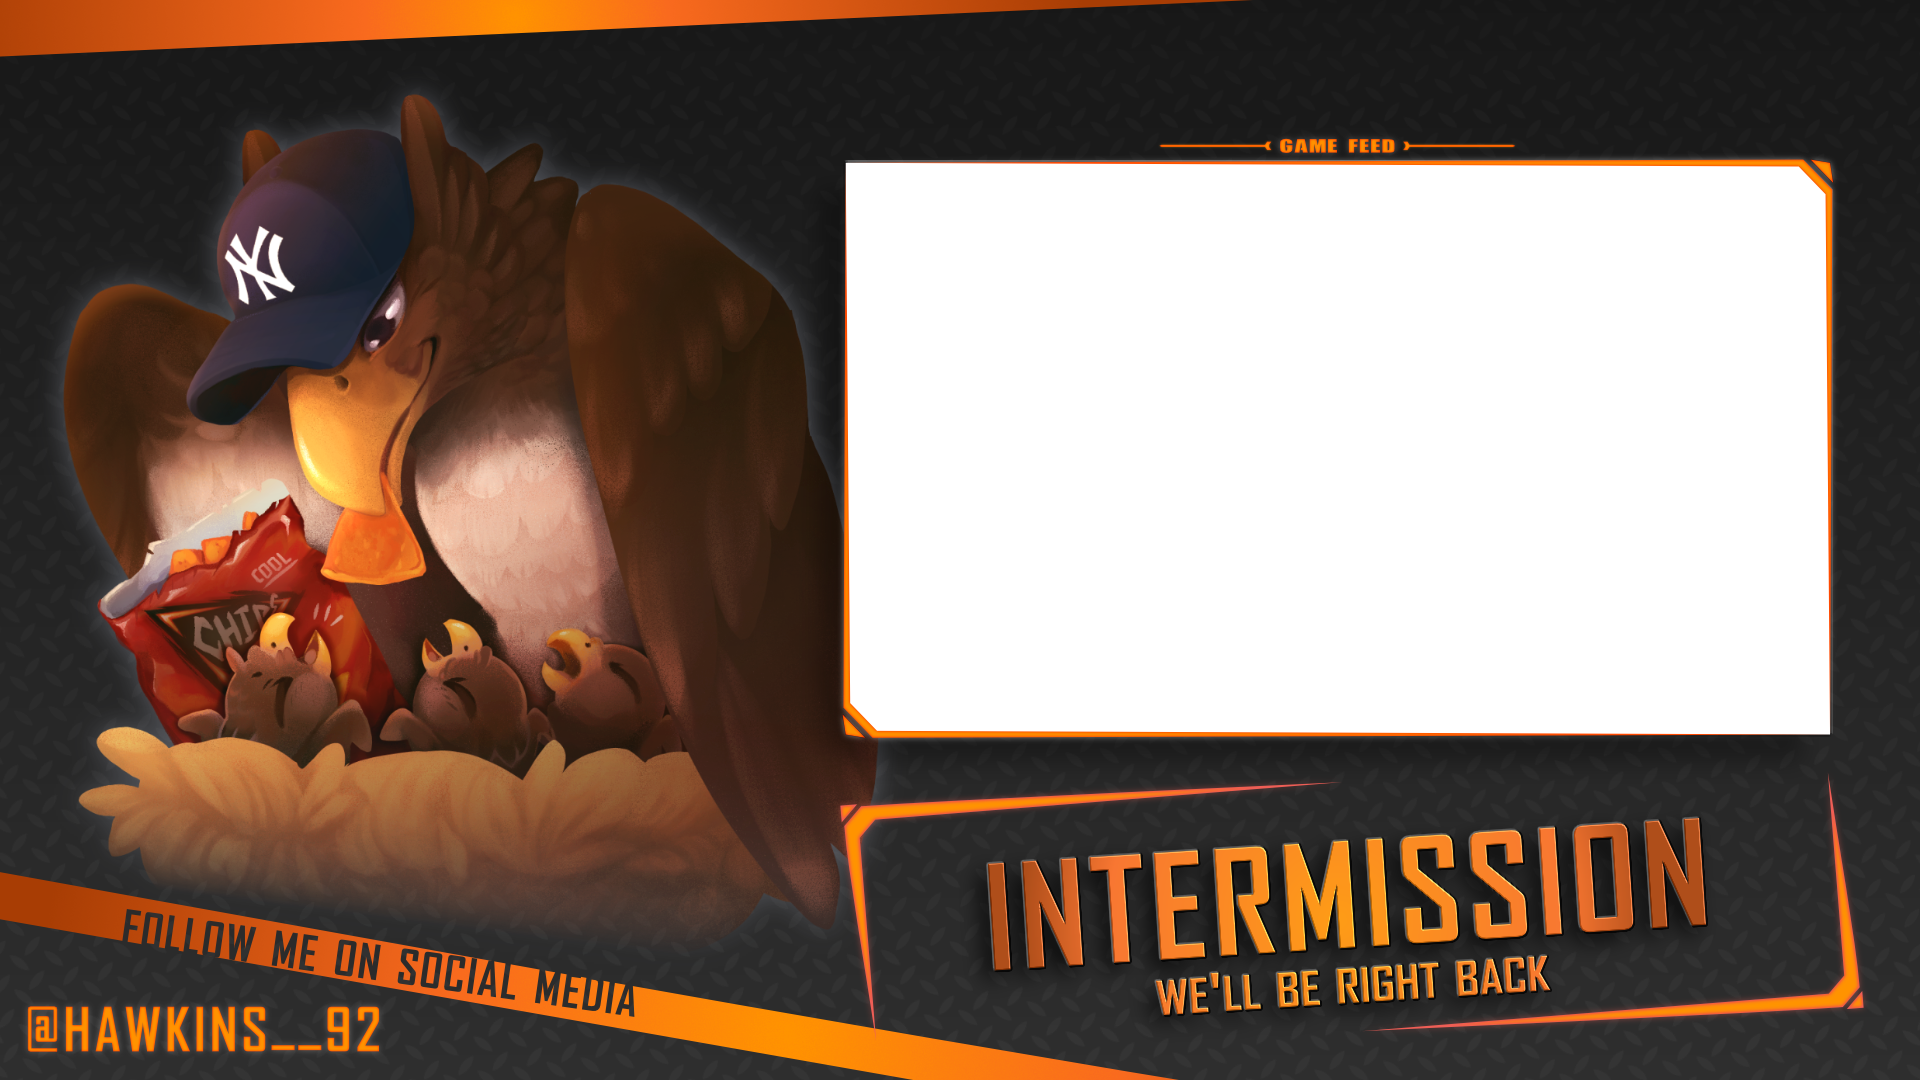 Overlay_Intermission_Hawkins92.png